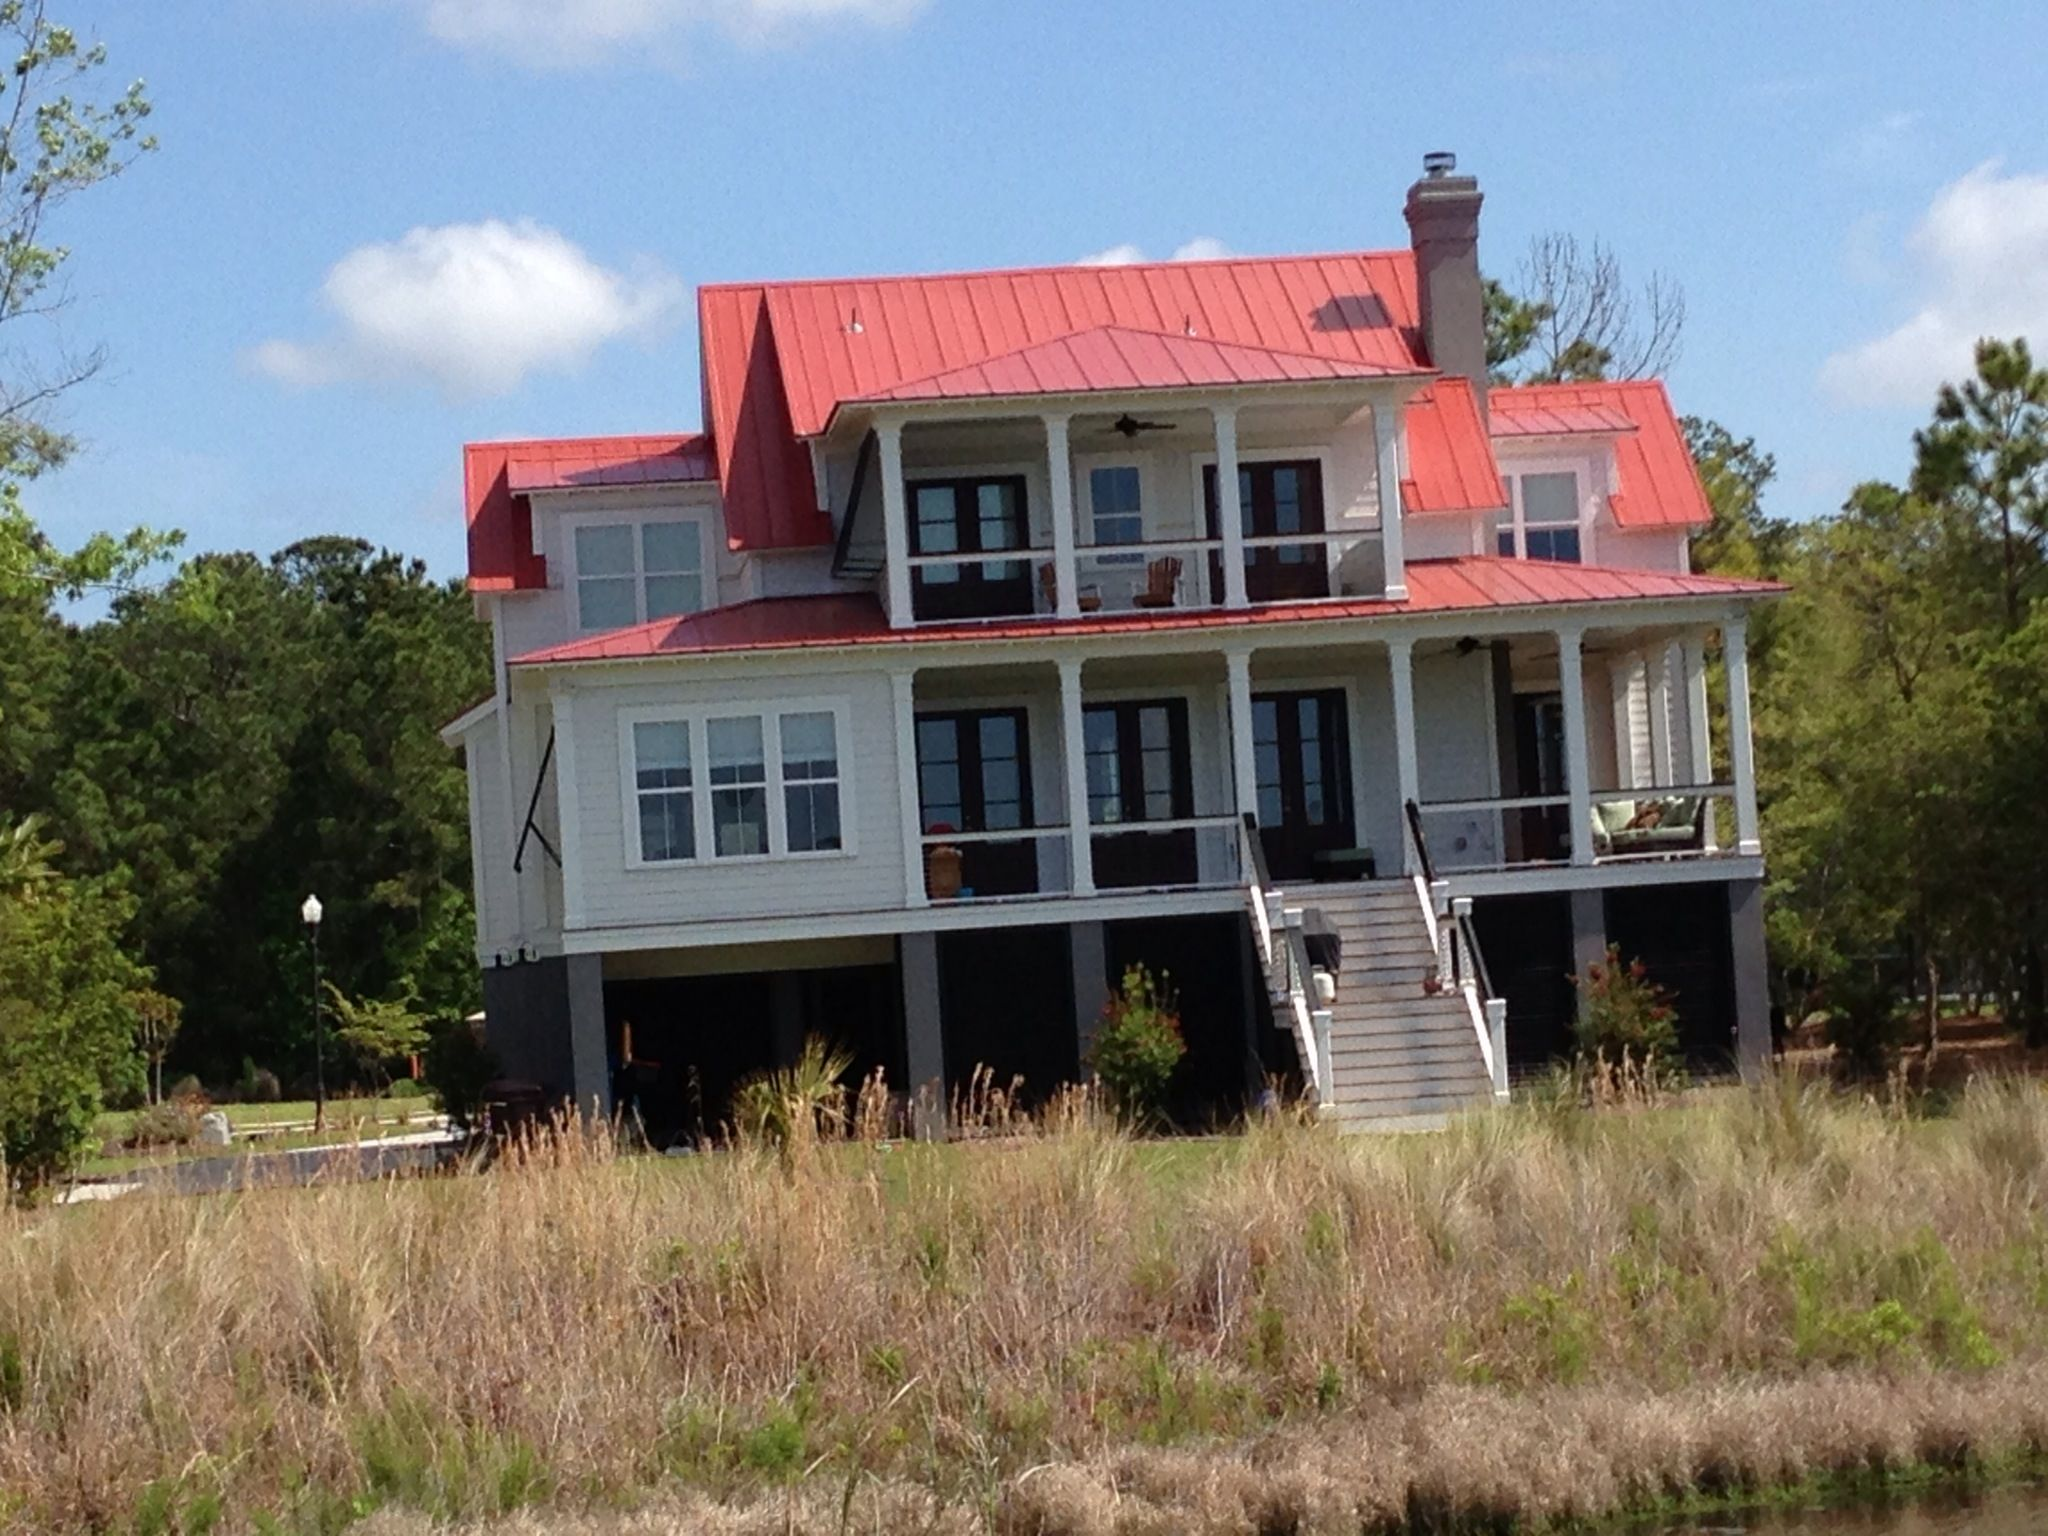 Drexel Metals Country Red 5V Crimp Metal Roof   Charleston, SC